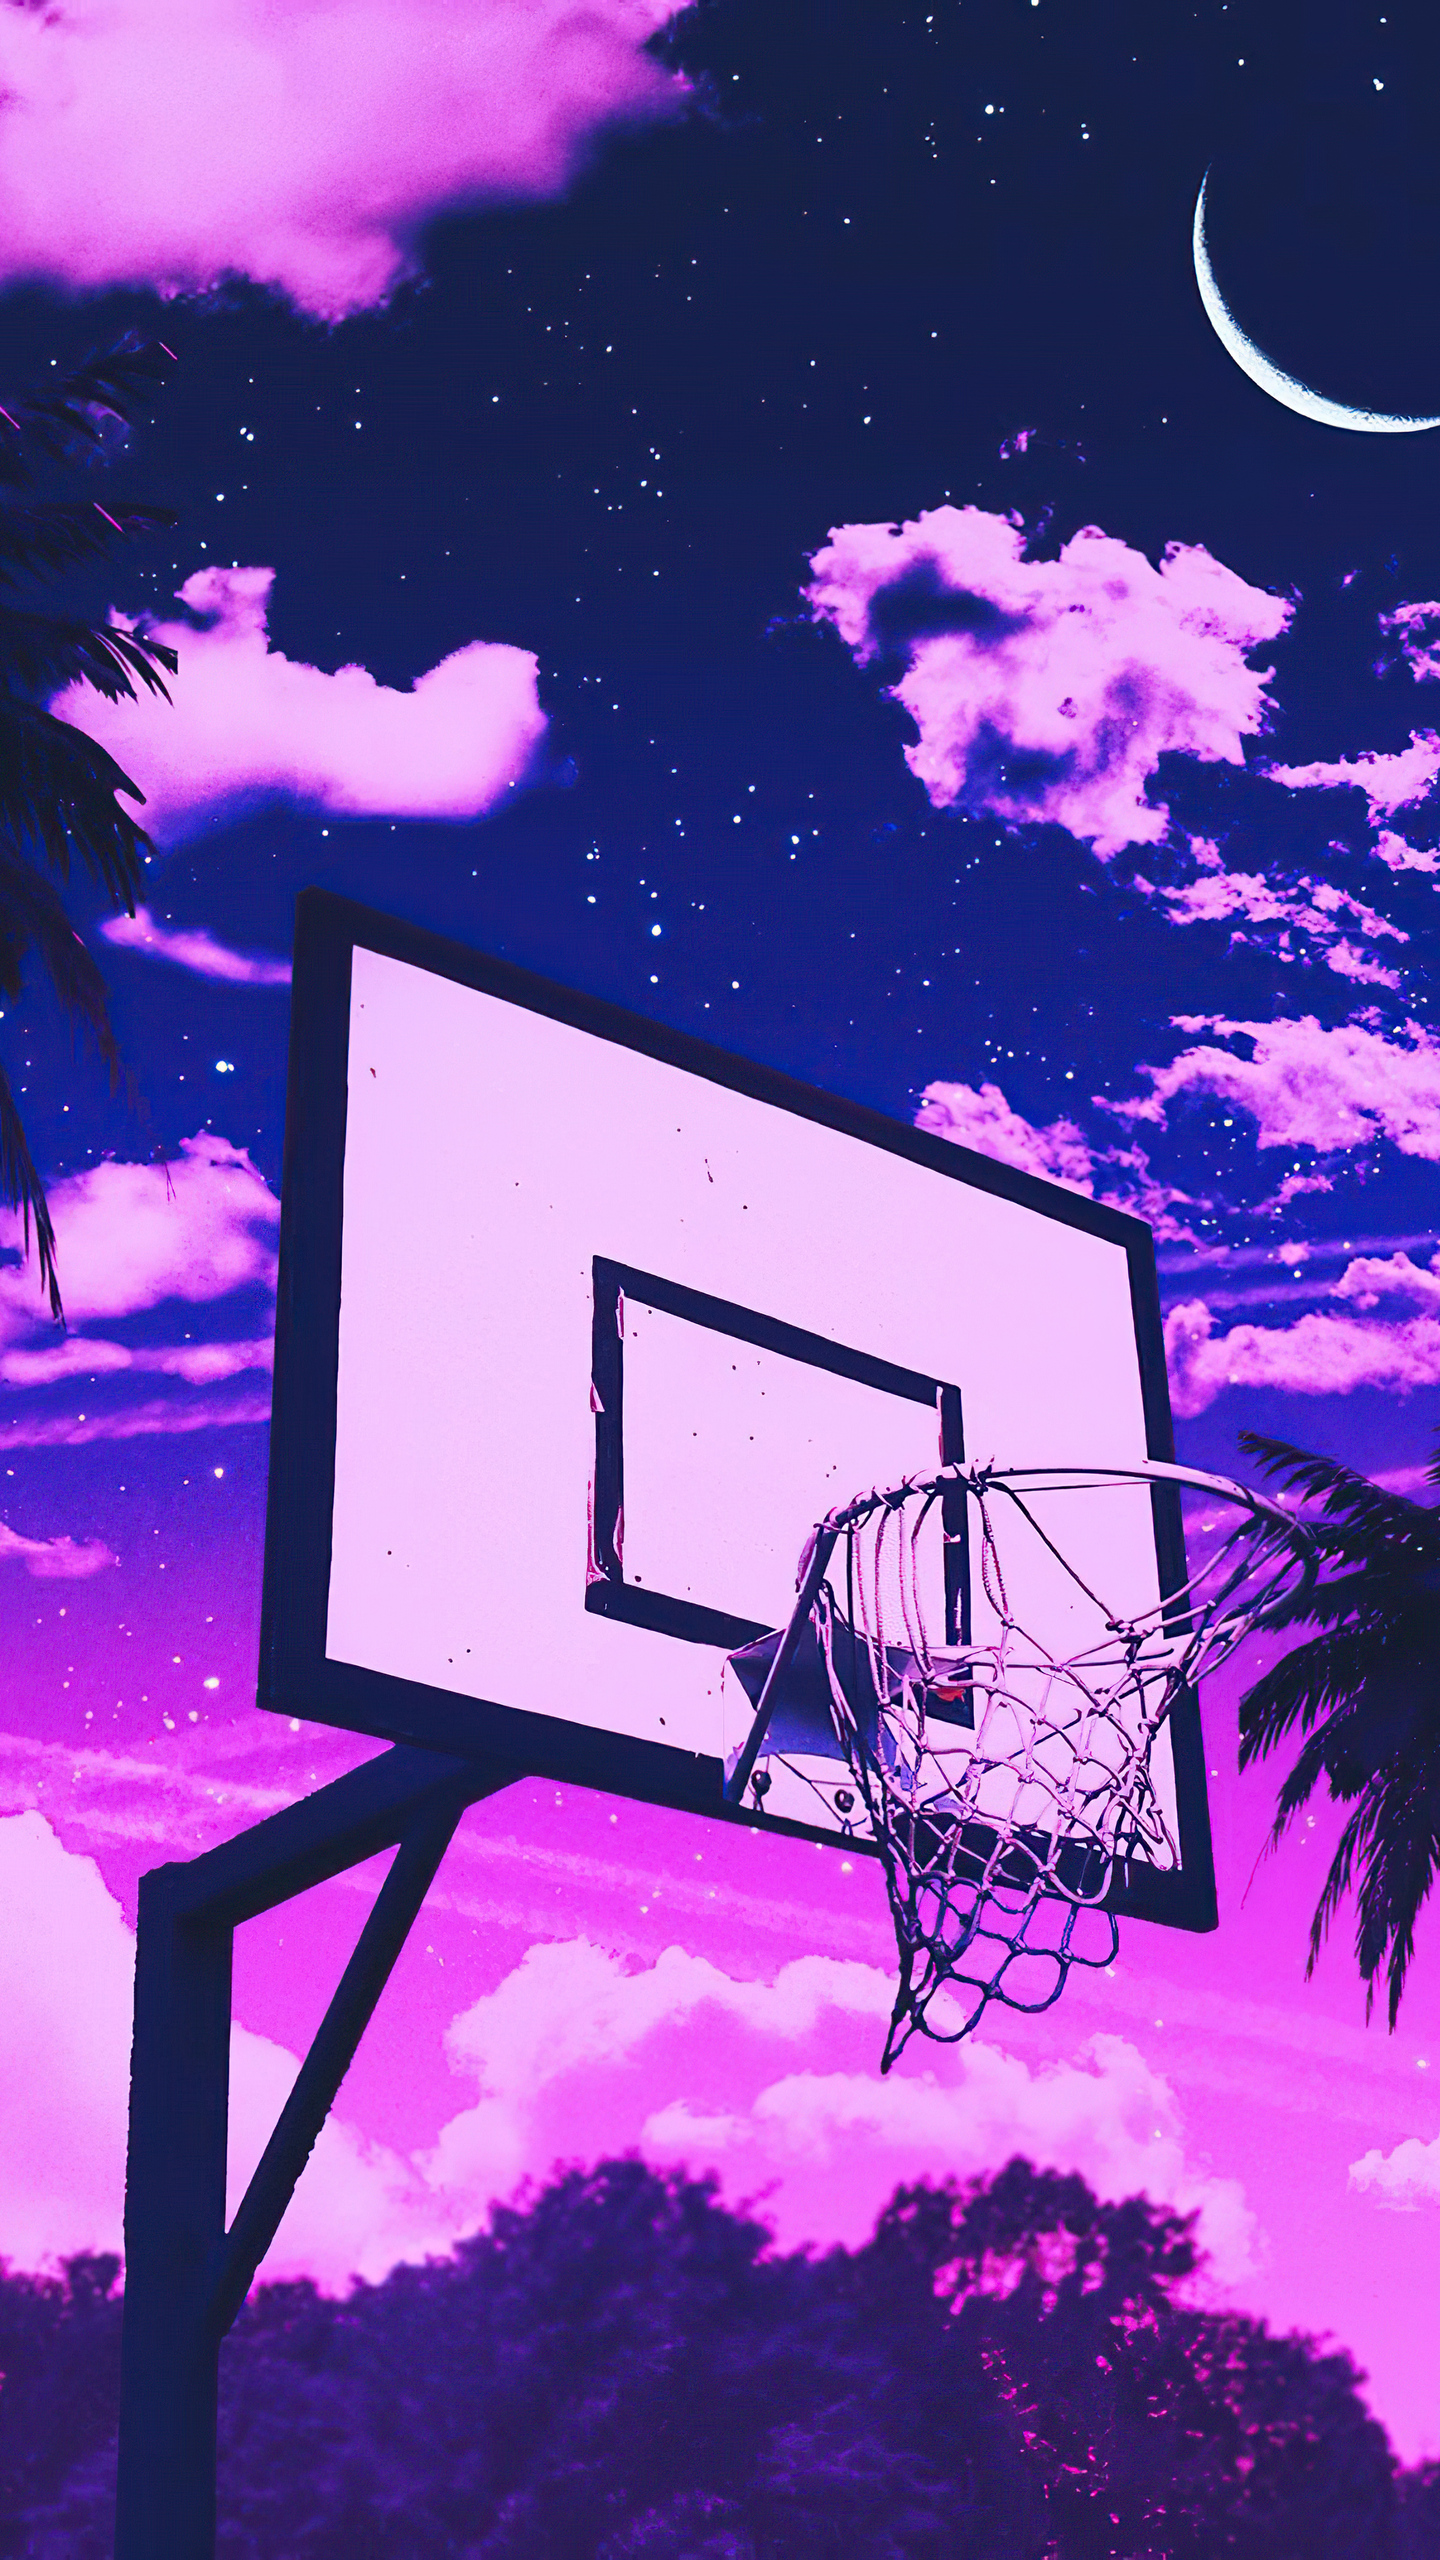 1440x2560 Basketball Court 4k Samsung Galaxy S6 S7 Google Pixel Xl Nexus 6 6p Lg G5 Hd 4k Wallpapers Images Backgrounds Photos And Pictures